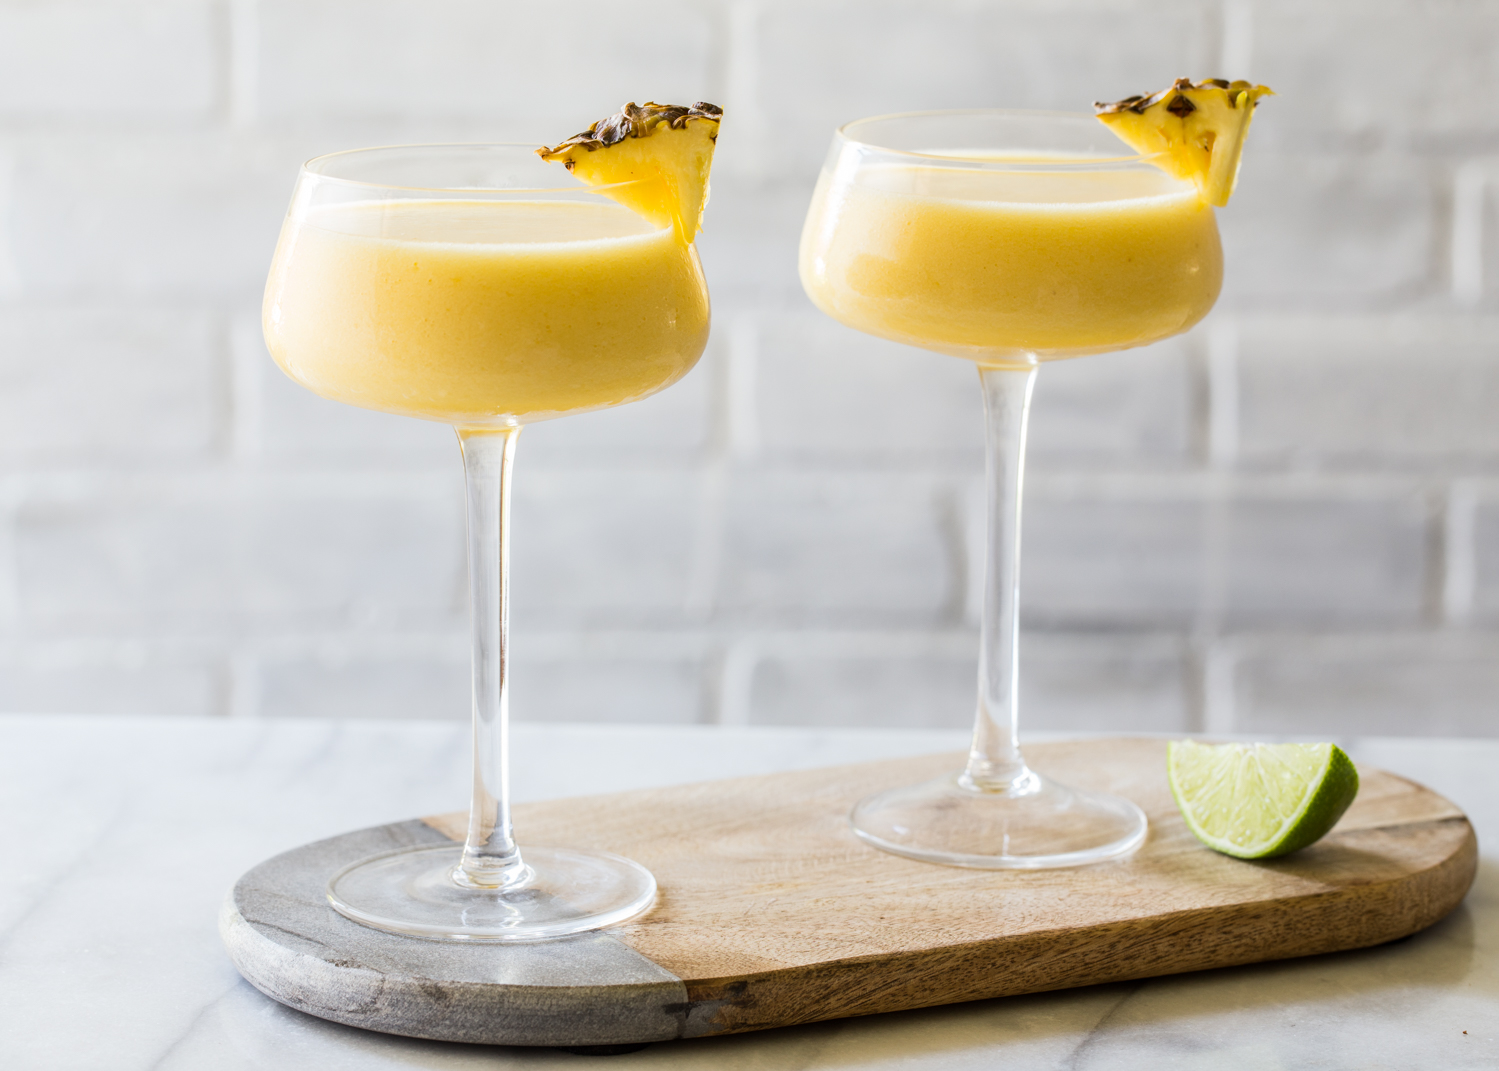 Frozen Pineapple Mango Daiquiri for a cocktail that will beat the summer heat